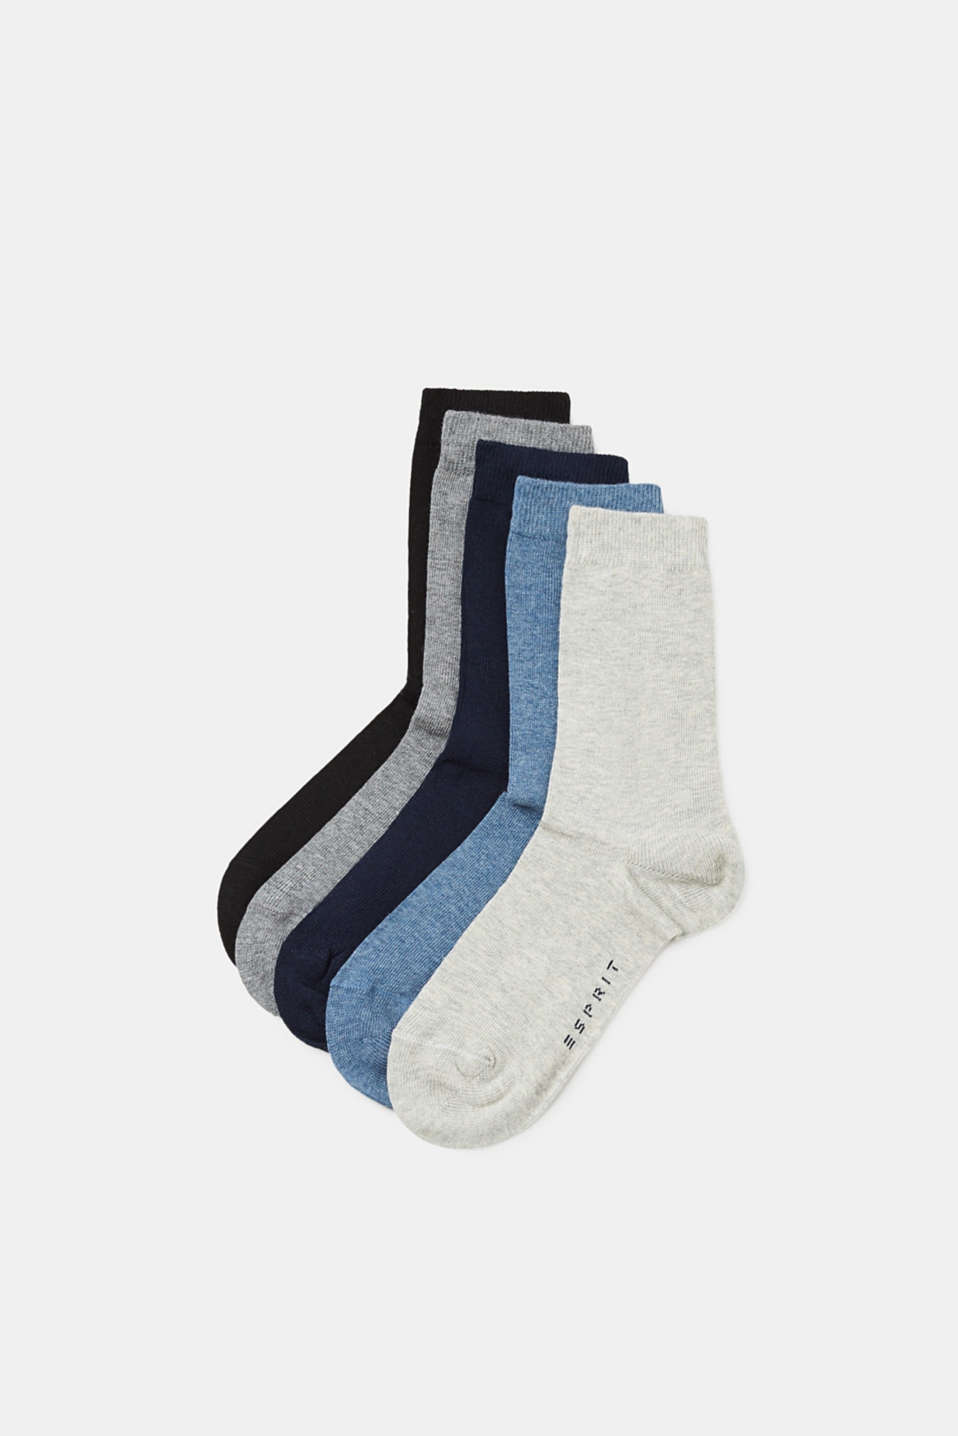 Esprit - Five pack of plain-coloured socks